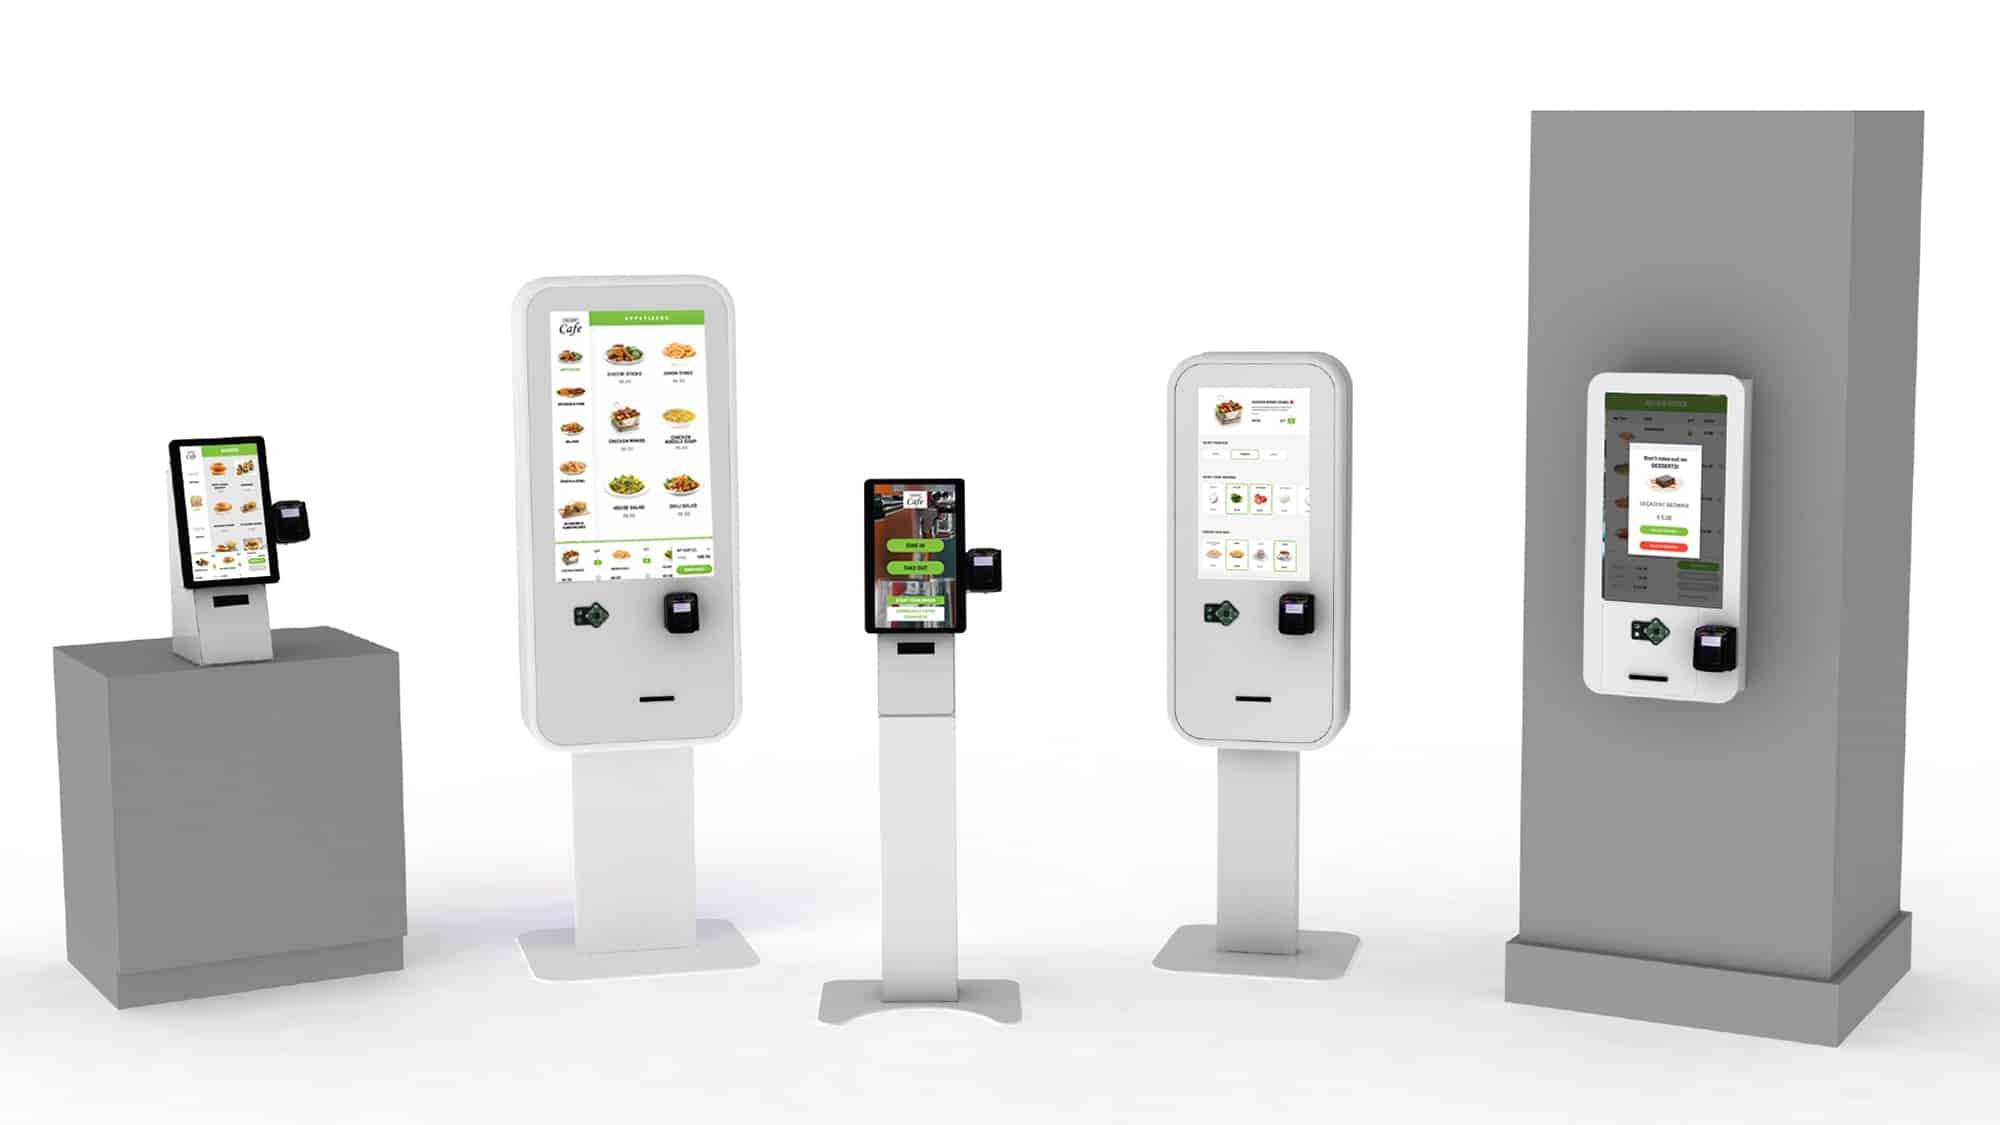 Main Benefits Of A Self-Service Kiosk System